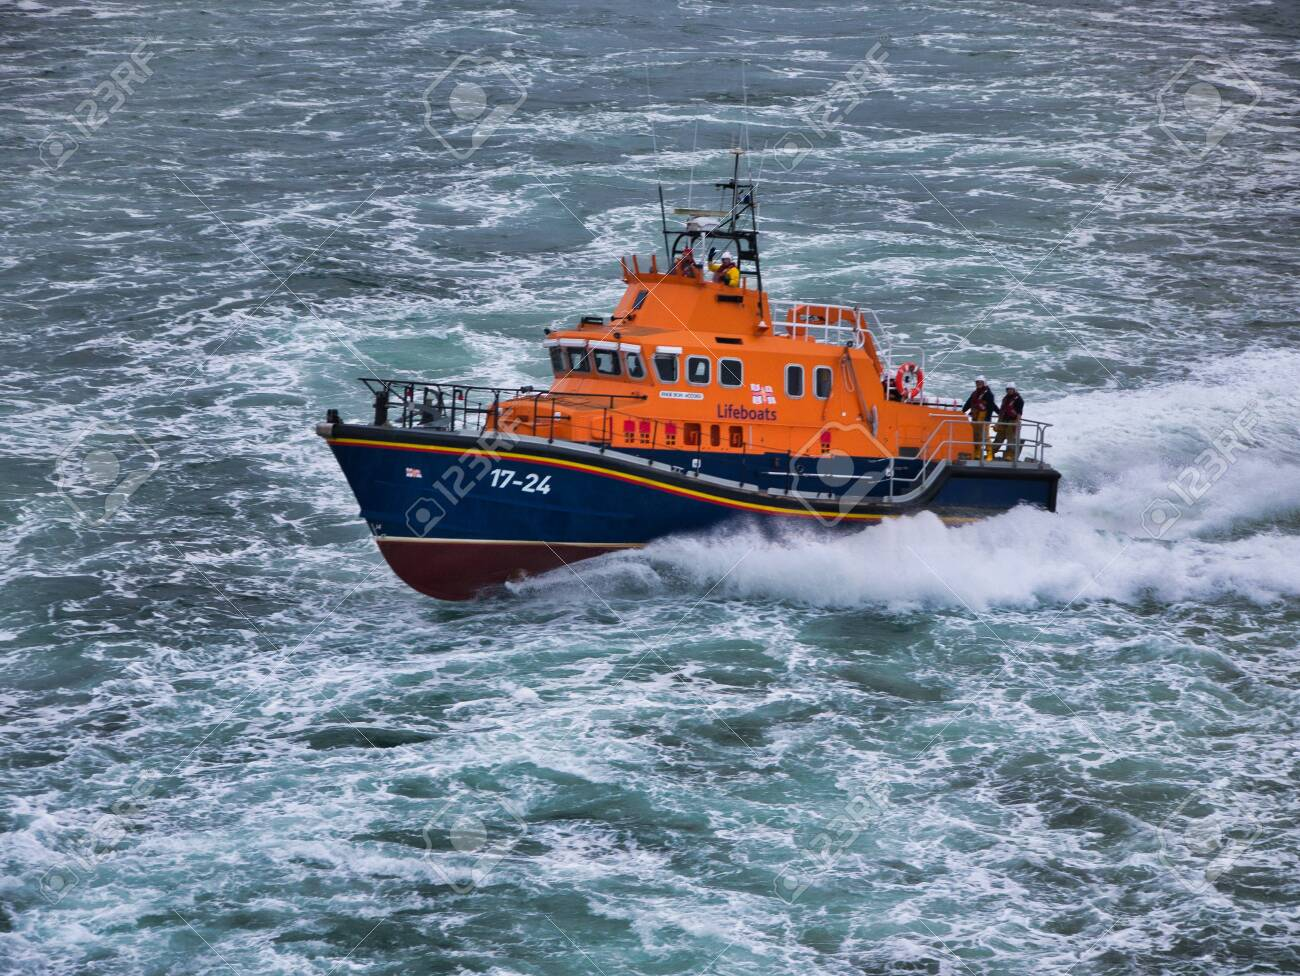 Aberdeen RNLI Lifeboat at sea, travelling at speed - this is a Severn class, self-righting, all-weather lifeboat with a crew of 7. The boat has a top speed of 25 knots and a range of 250 nautical miles. - 140052537